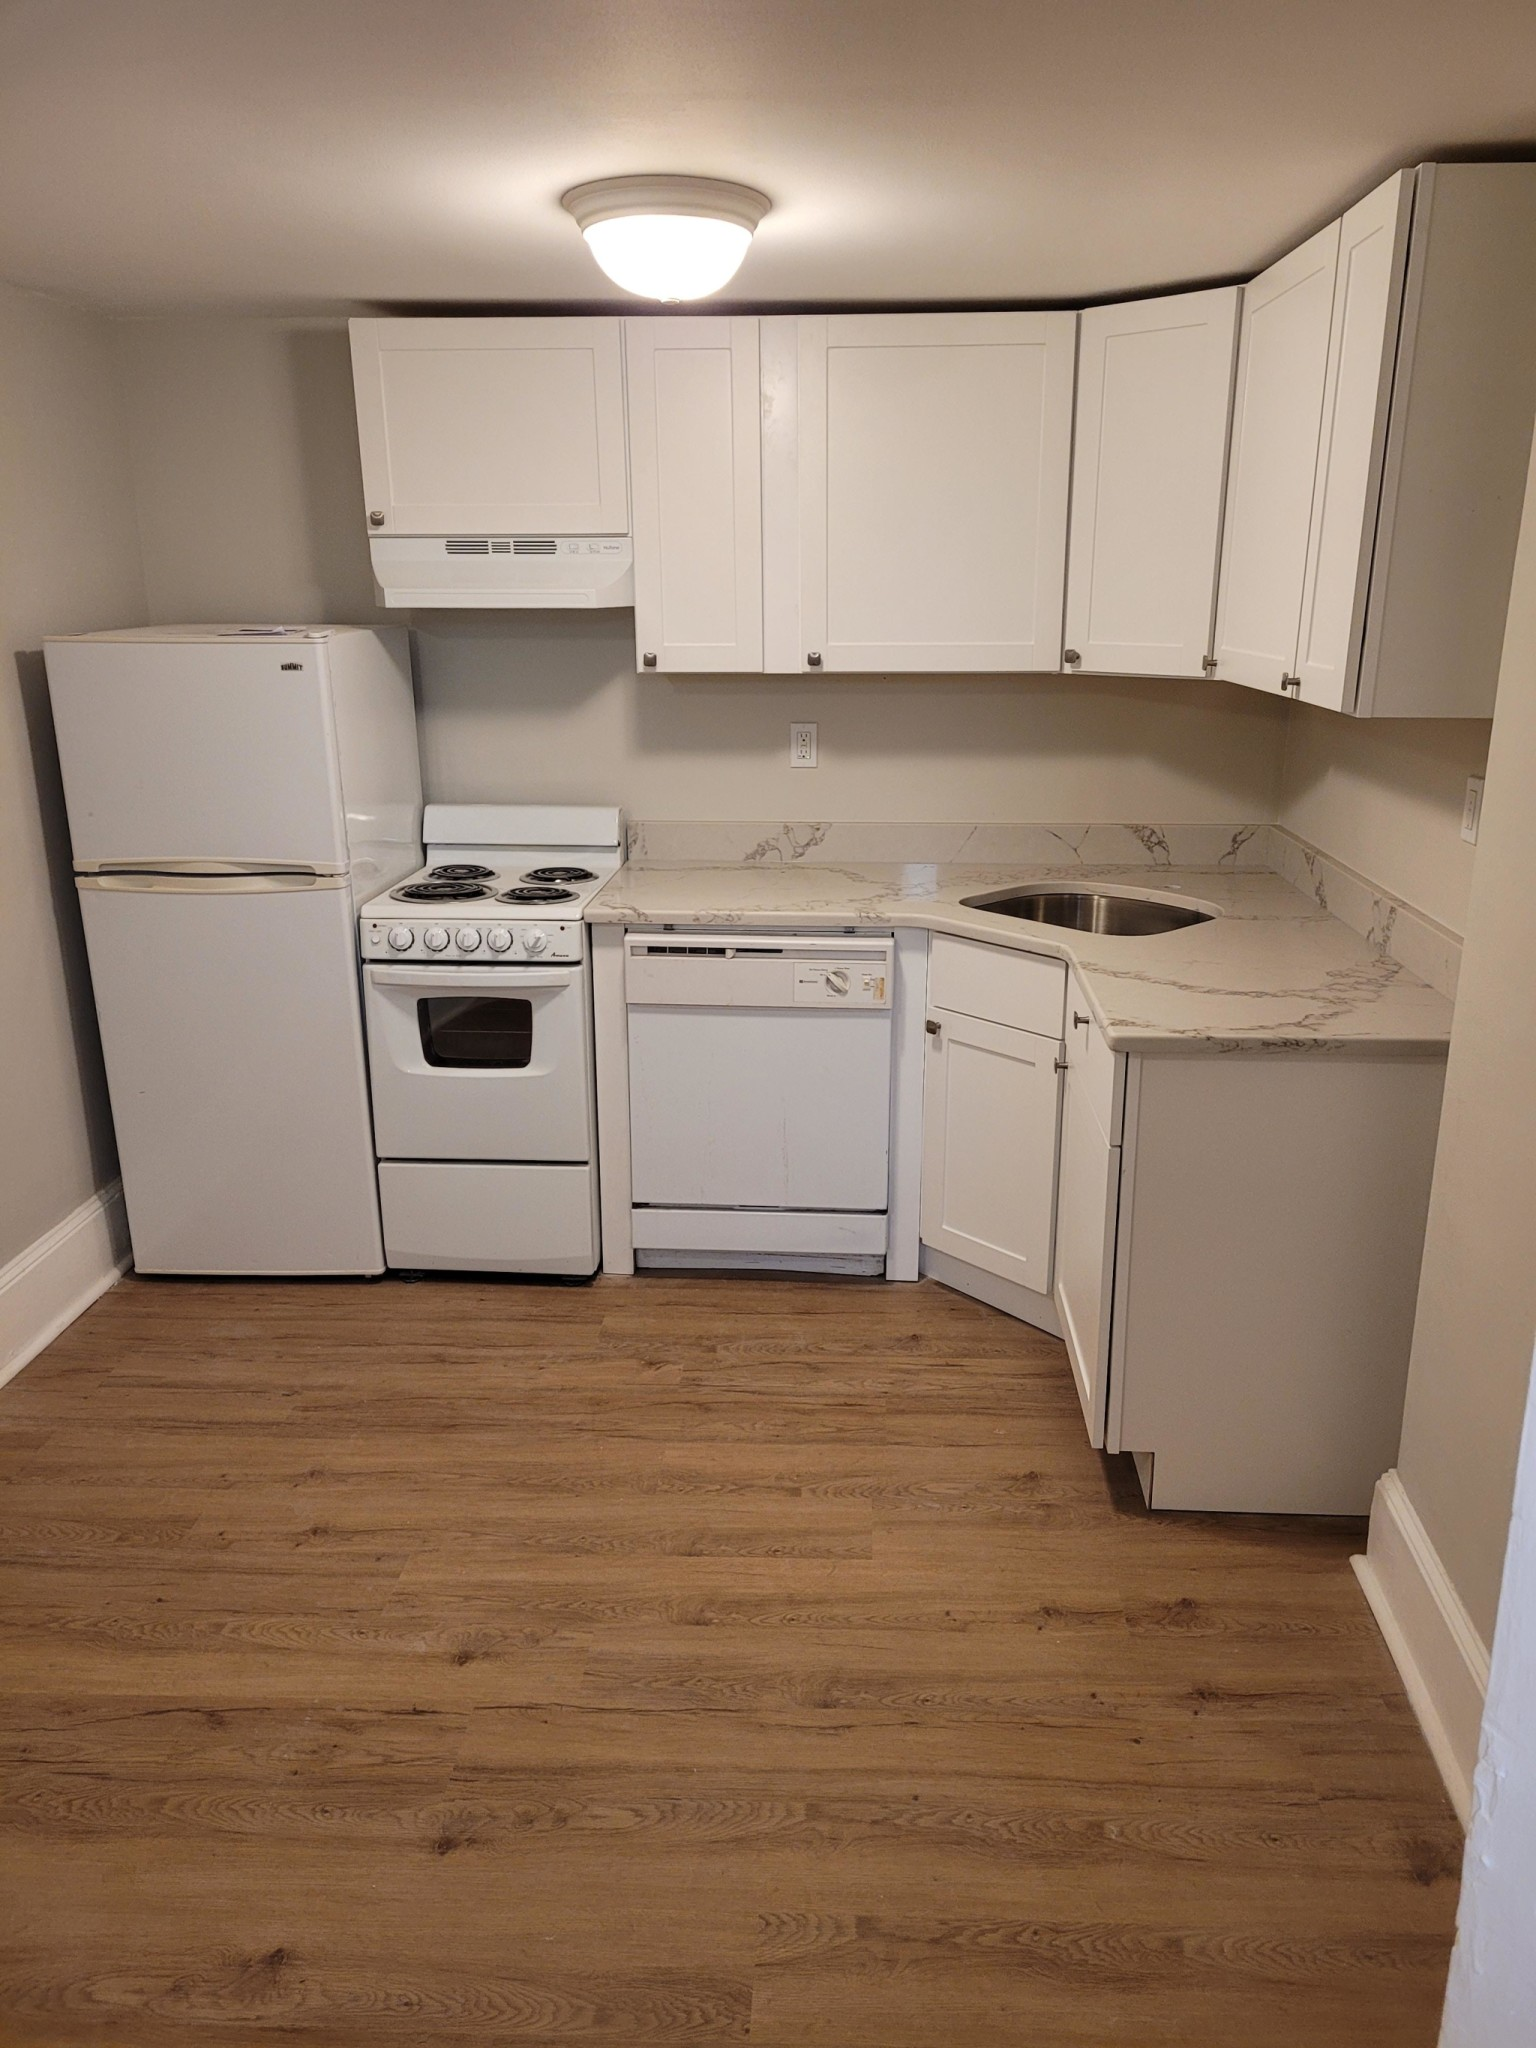 1 Bed, 1 Bath apartment in Boston, Allston for $1,795